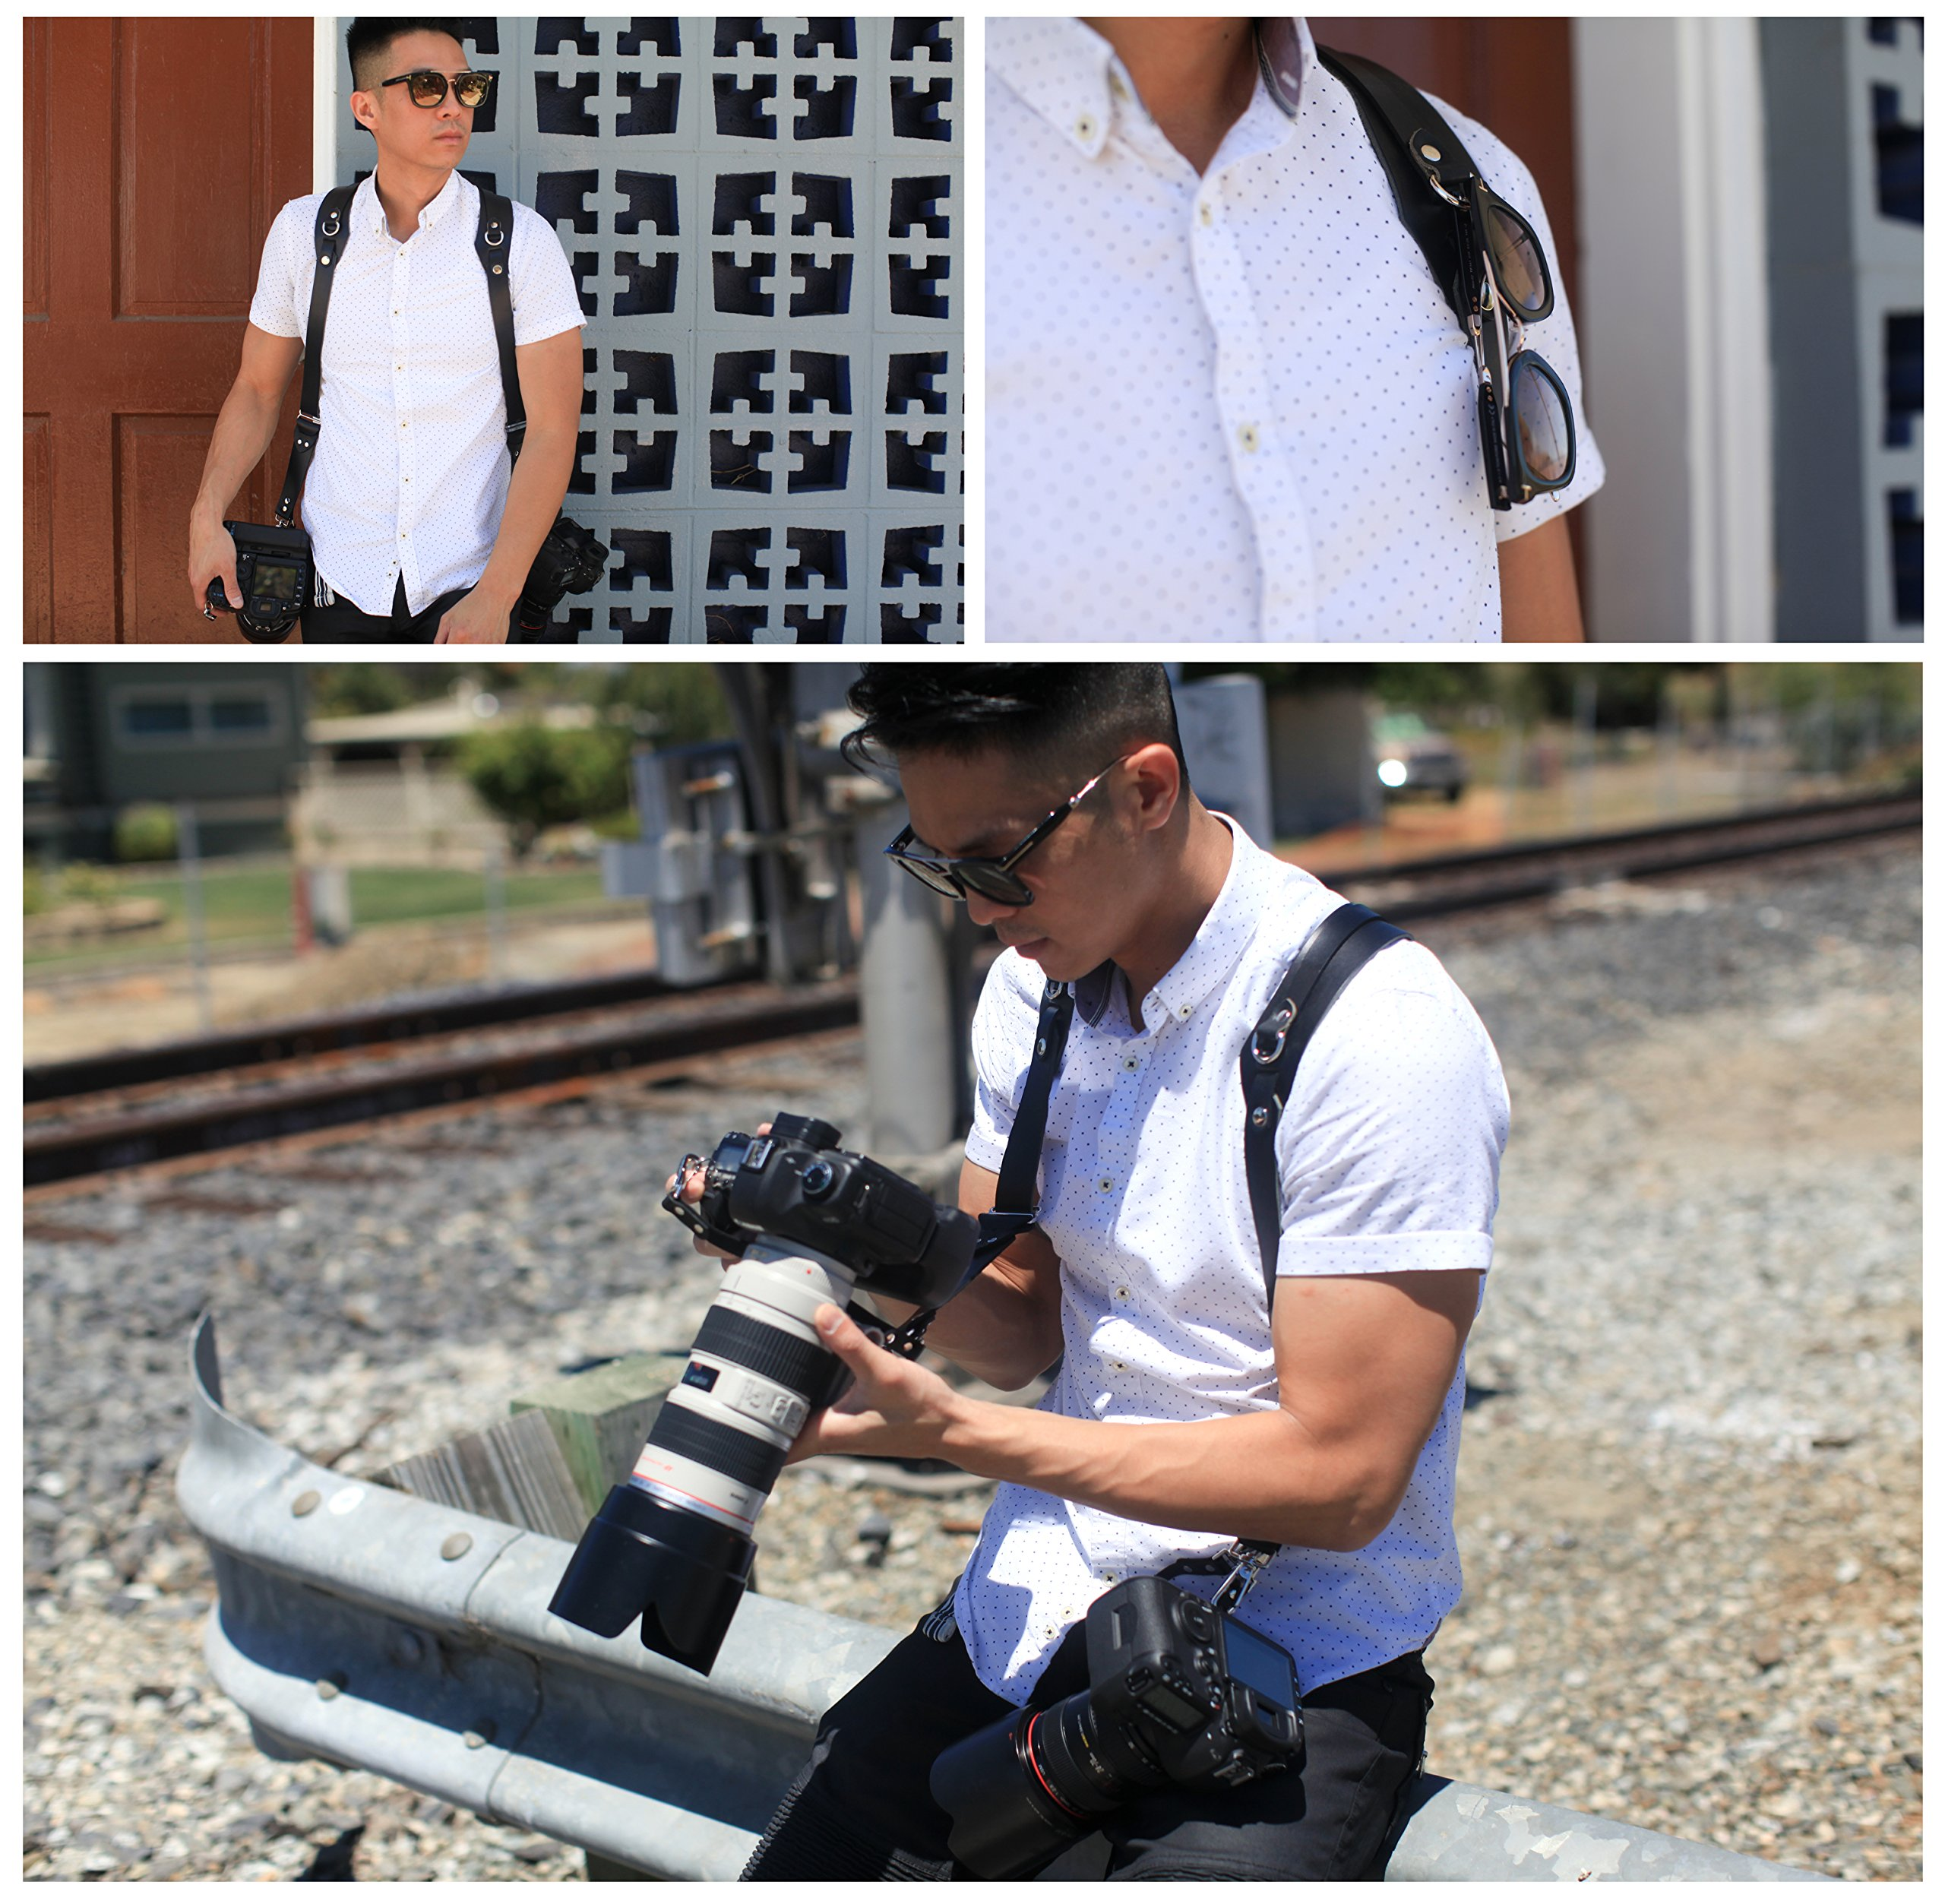 Clydesdale Pro-Dual Handmade Leather Camera Harness, Sling & Strap RL Handcrafts. DLSR, Mirrorless, Point & Shoot Made in The USA (Black, X-Large) by Republic Leather Company (Image #5)